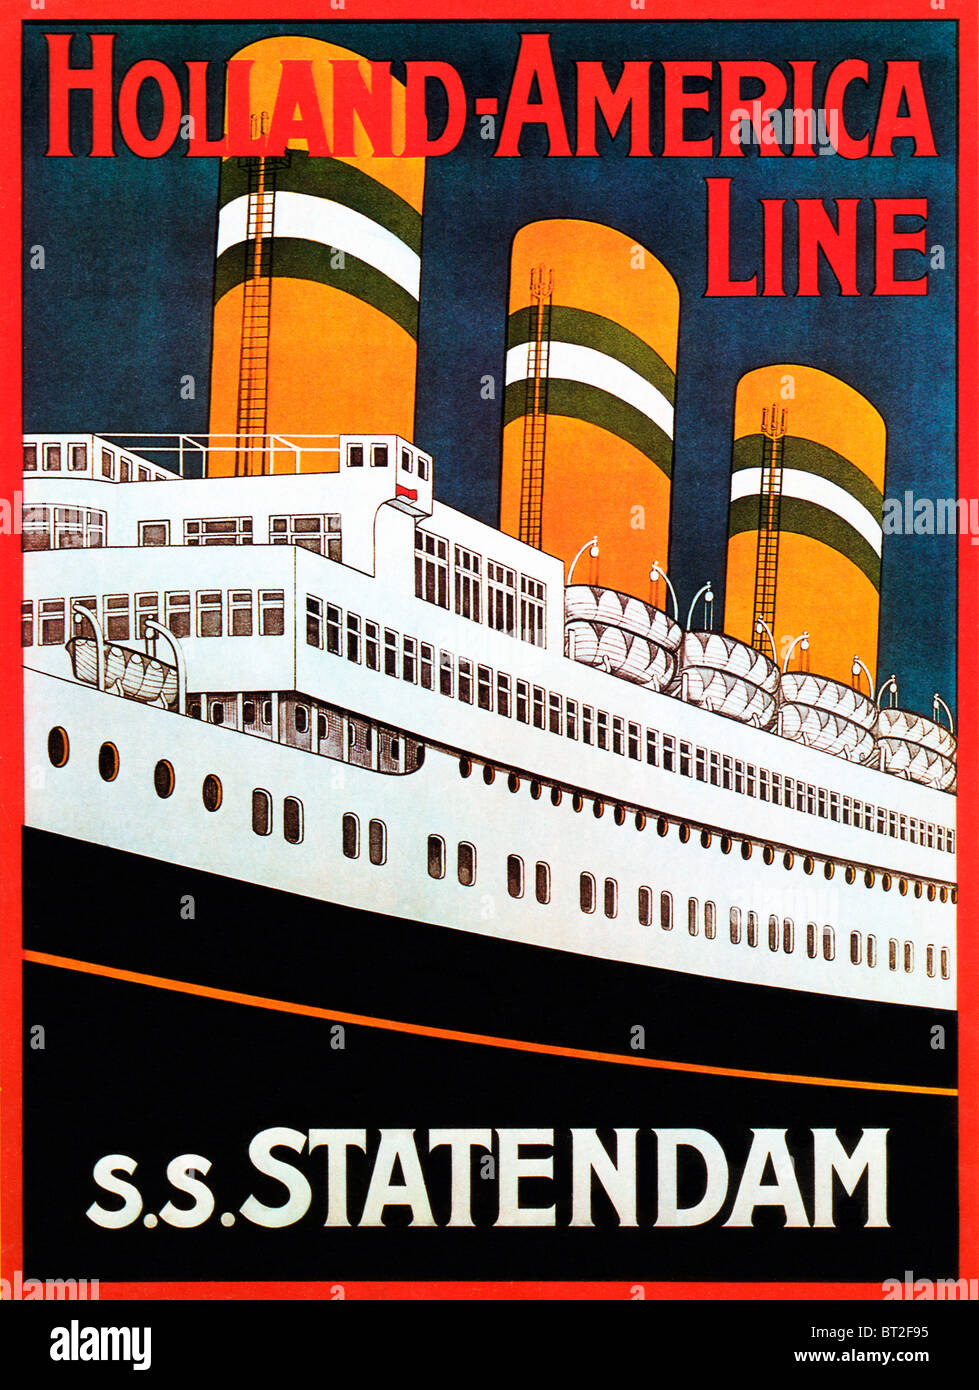 SS Statendam, 1930s poster for the Holland-America Line trans-Atlantic liner, the third of that name - Stock Image